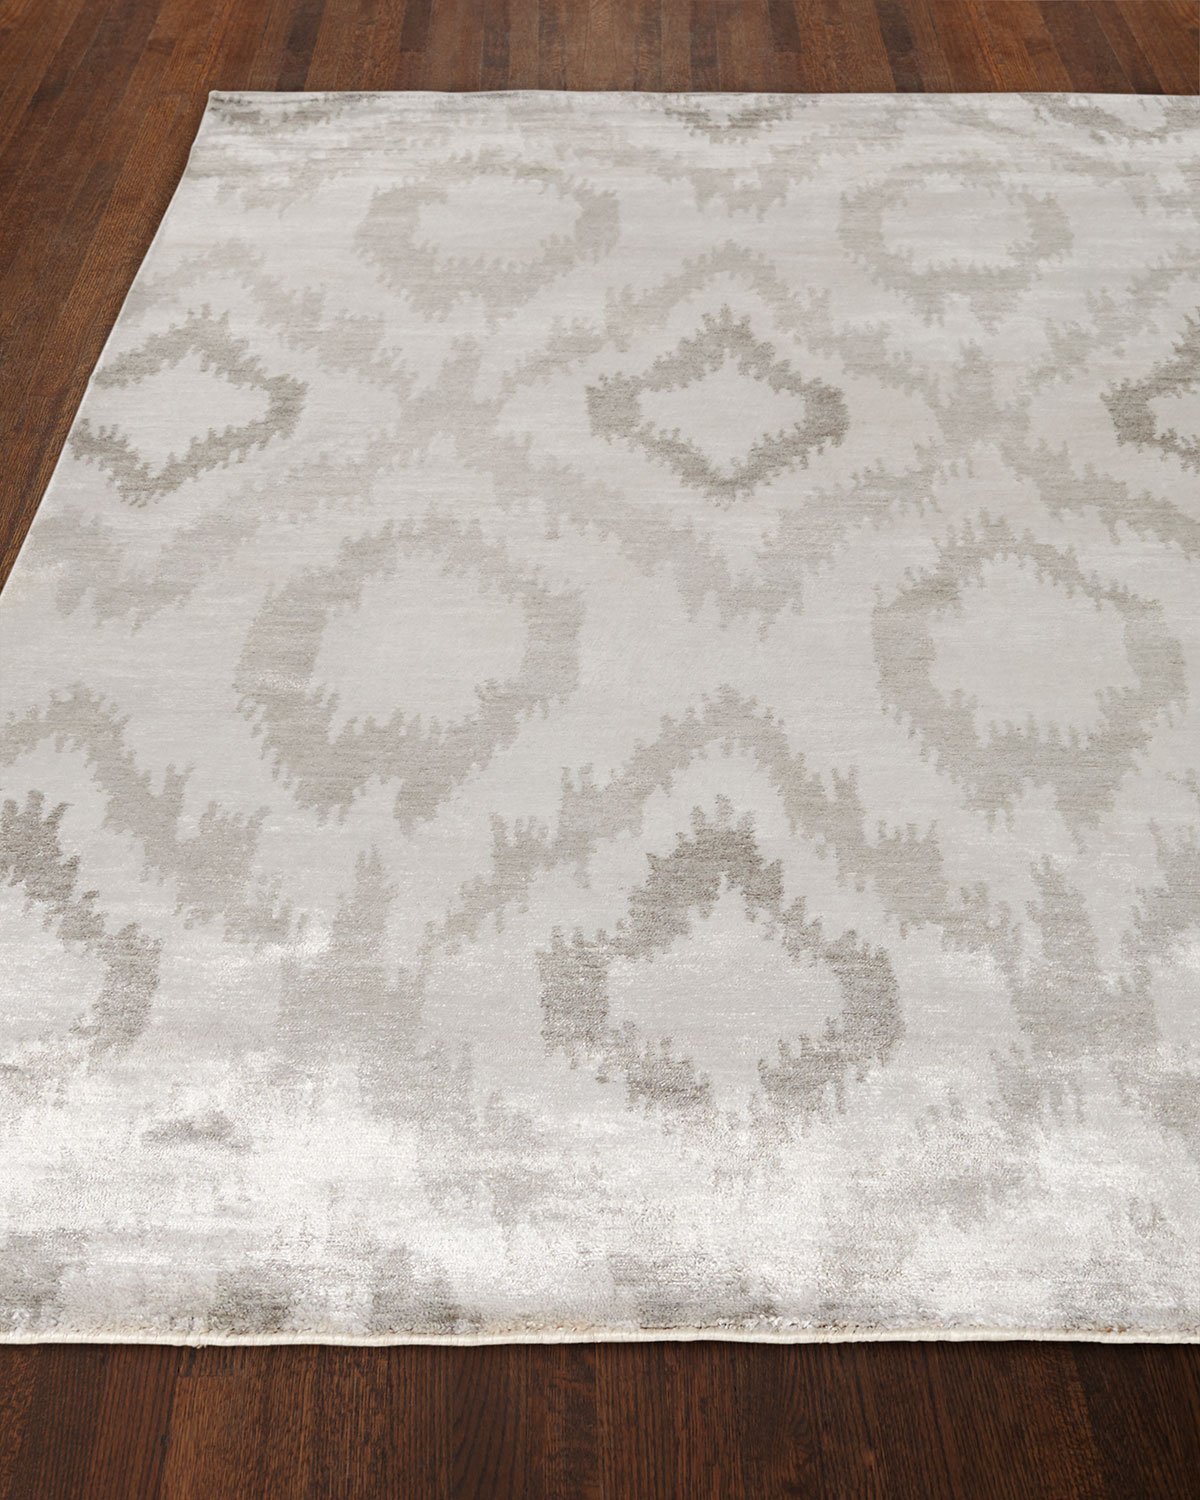 Exquisite Rugs Mesa Hand-Knotted Silver Rug, 8' x 10'